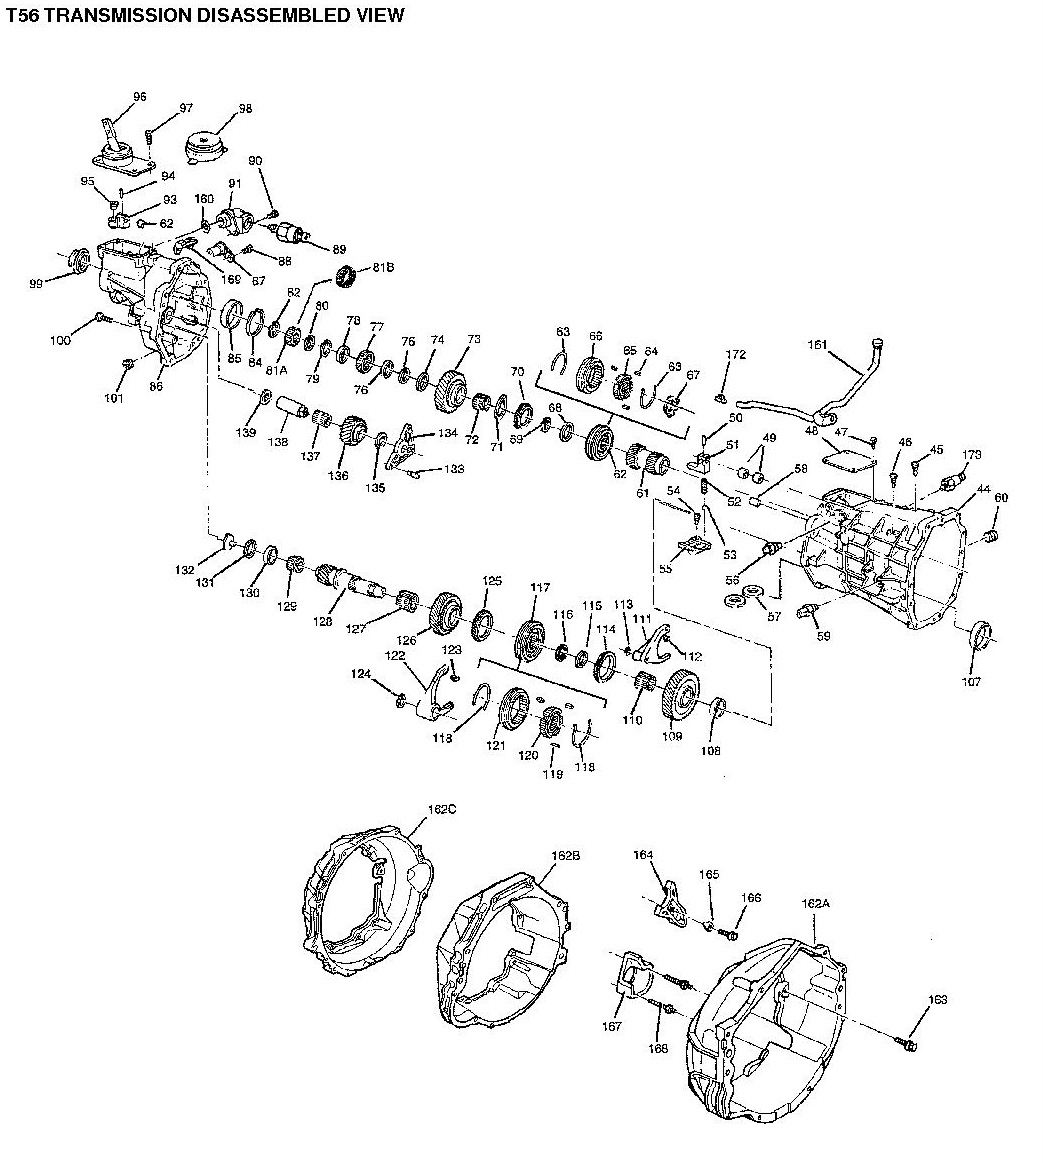 Manual Gear Shift Diagram, Manual, Free Engine Image For